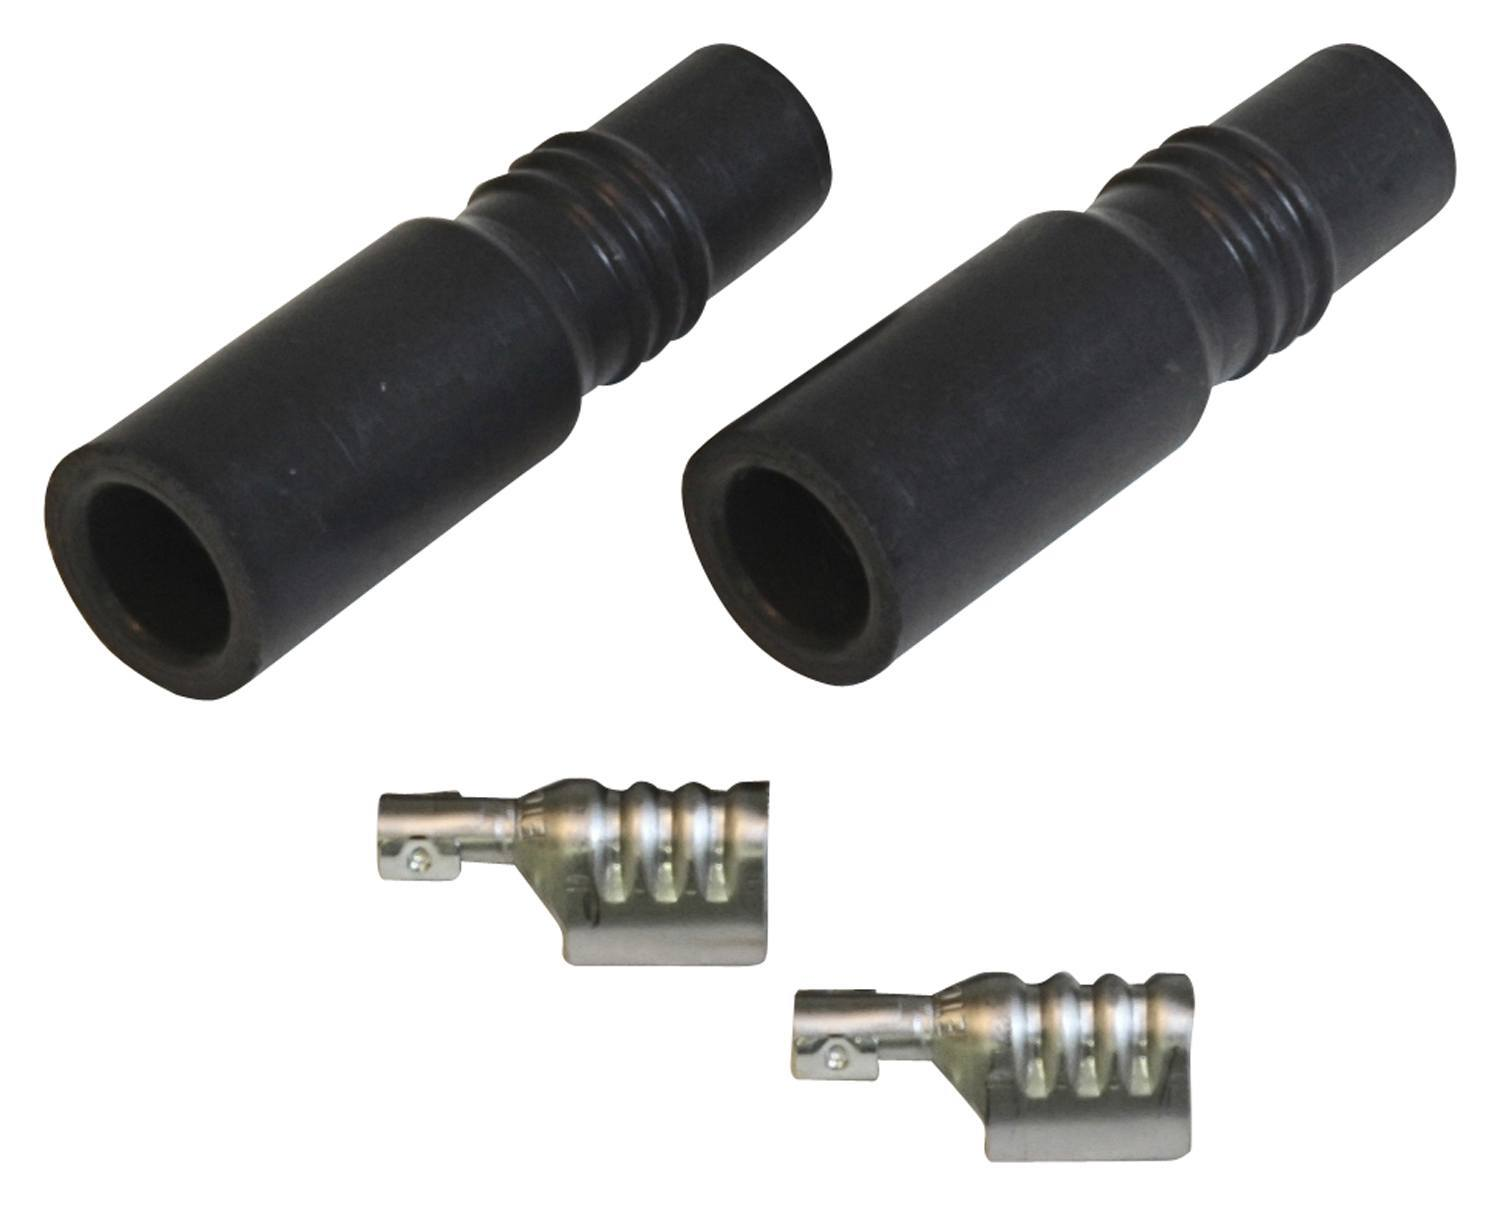 Straight Plug Boots & Terminals - LT1 2-Pack